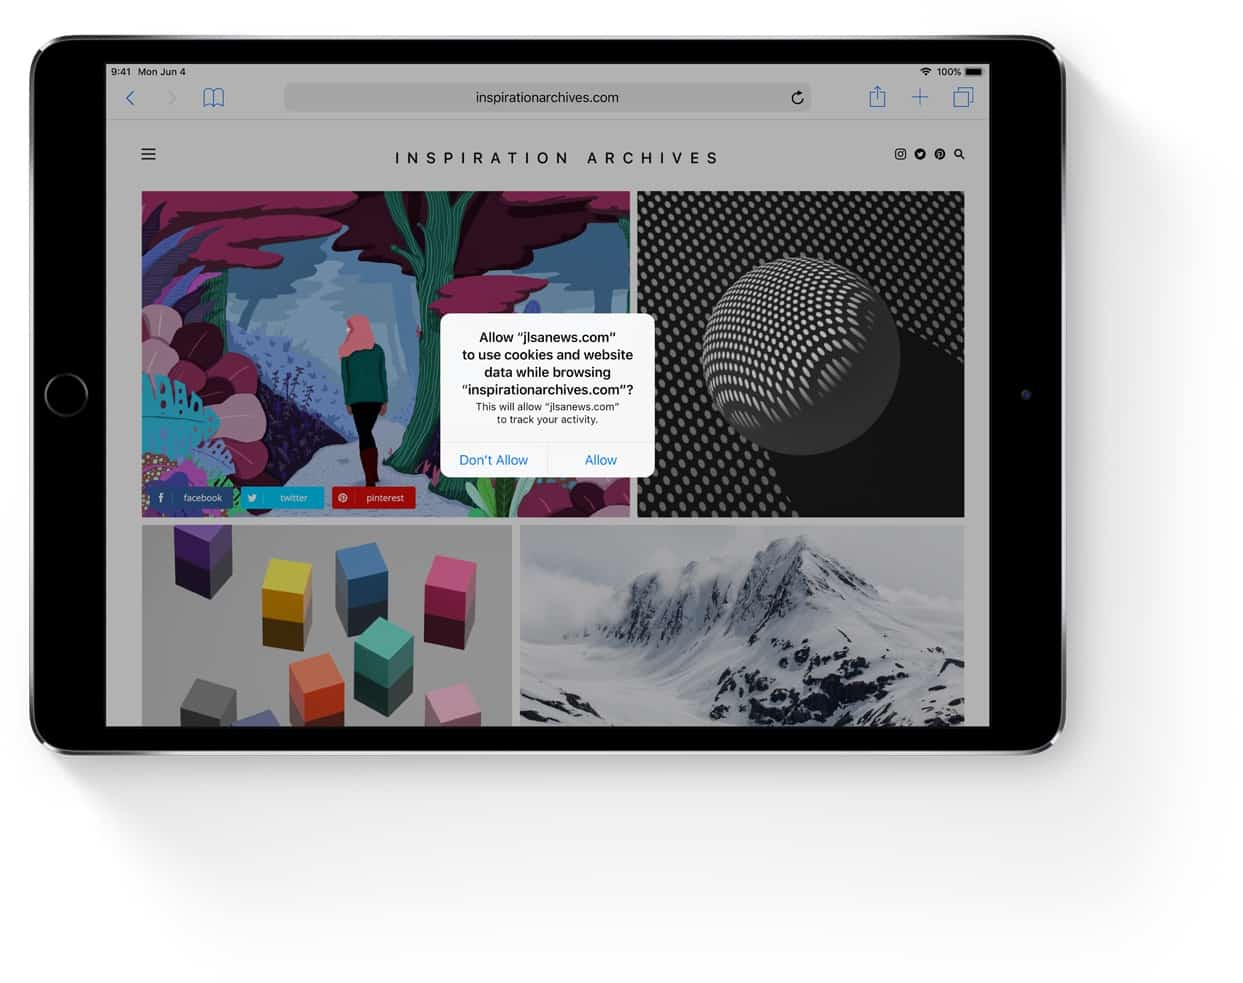 6 reasons you should switch to Safari in iOS 12 and macOS